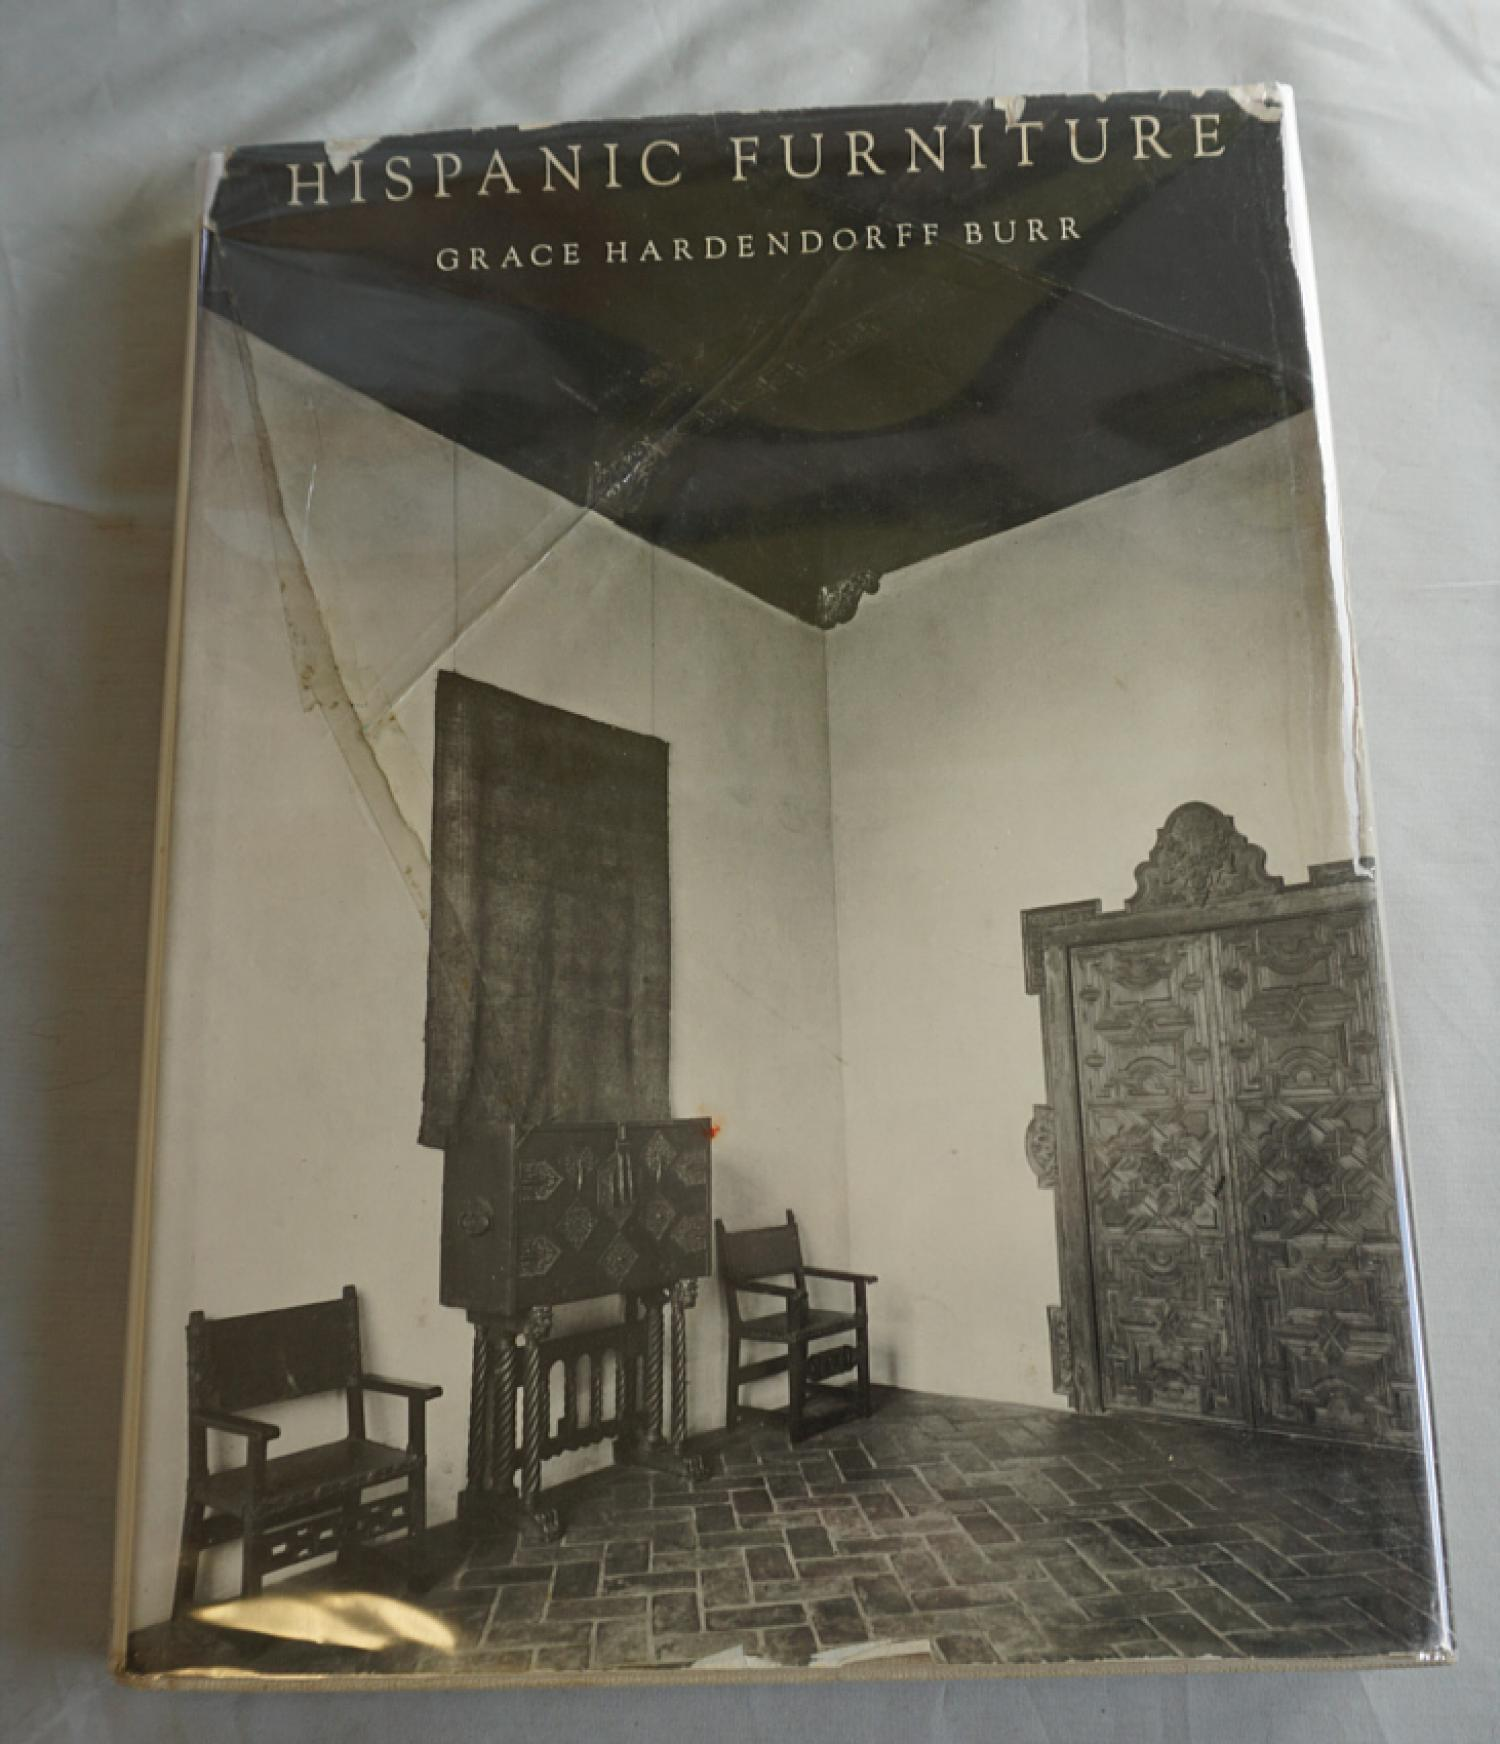 Hispanic Furniture by Grace Hardendorff Burr 1964